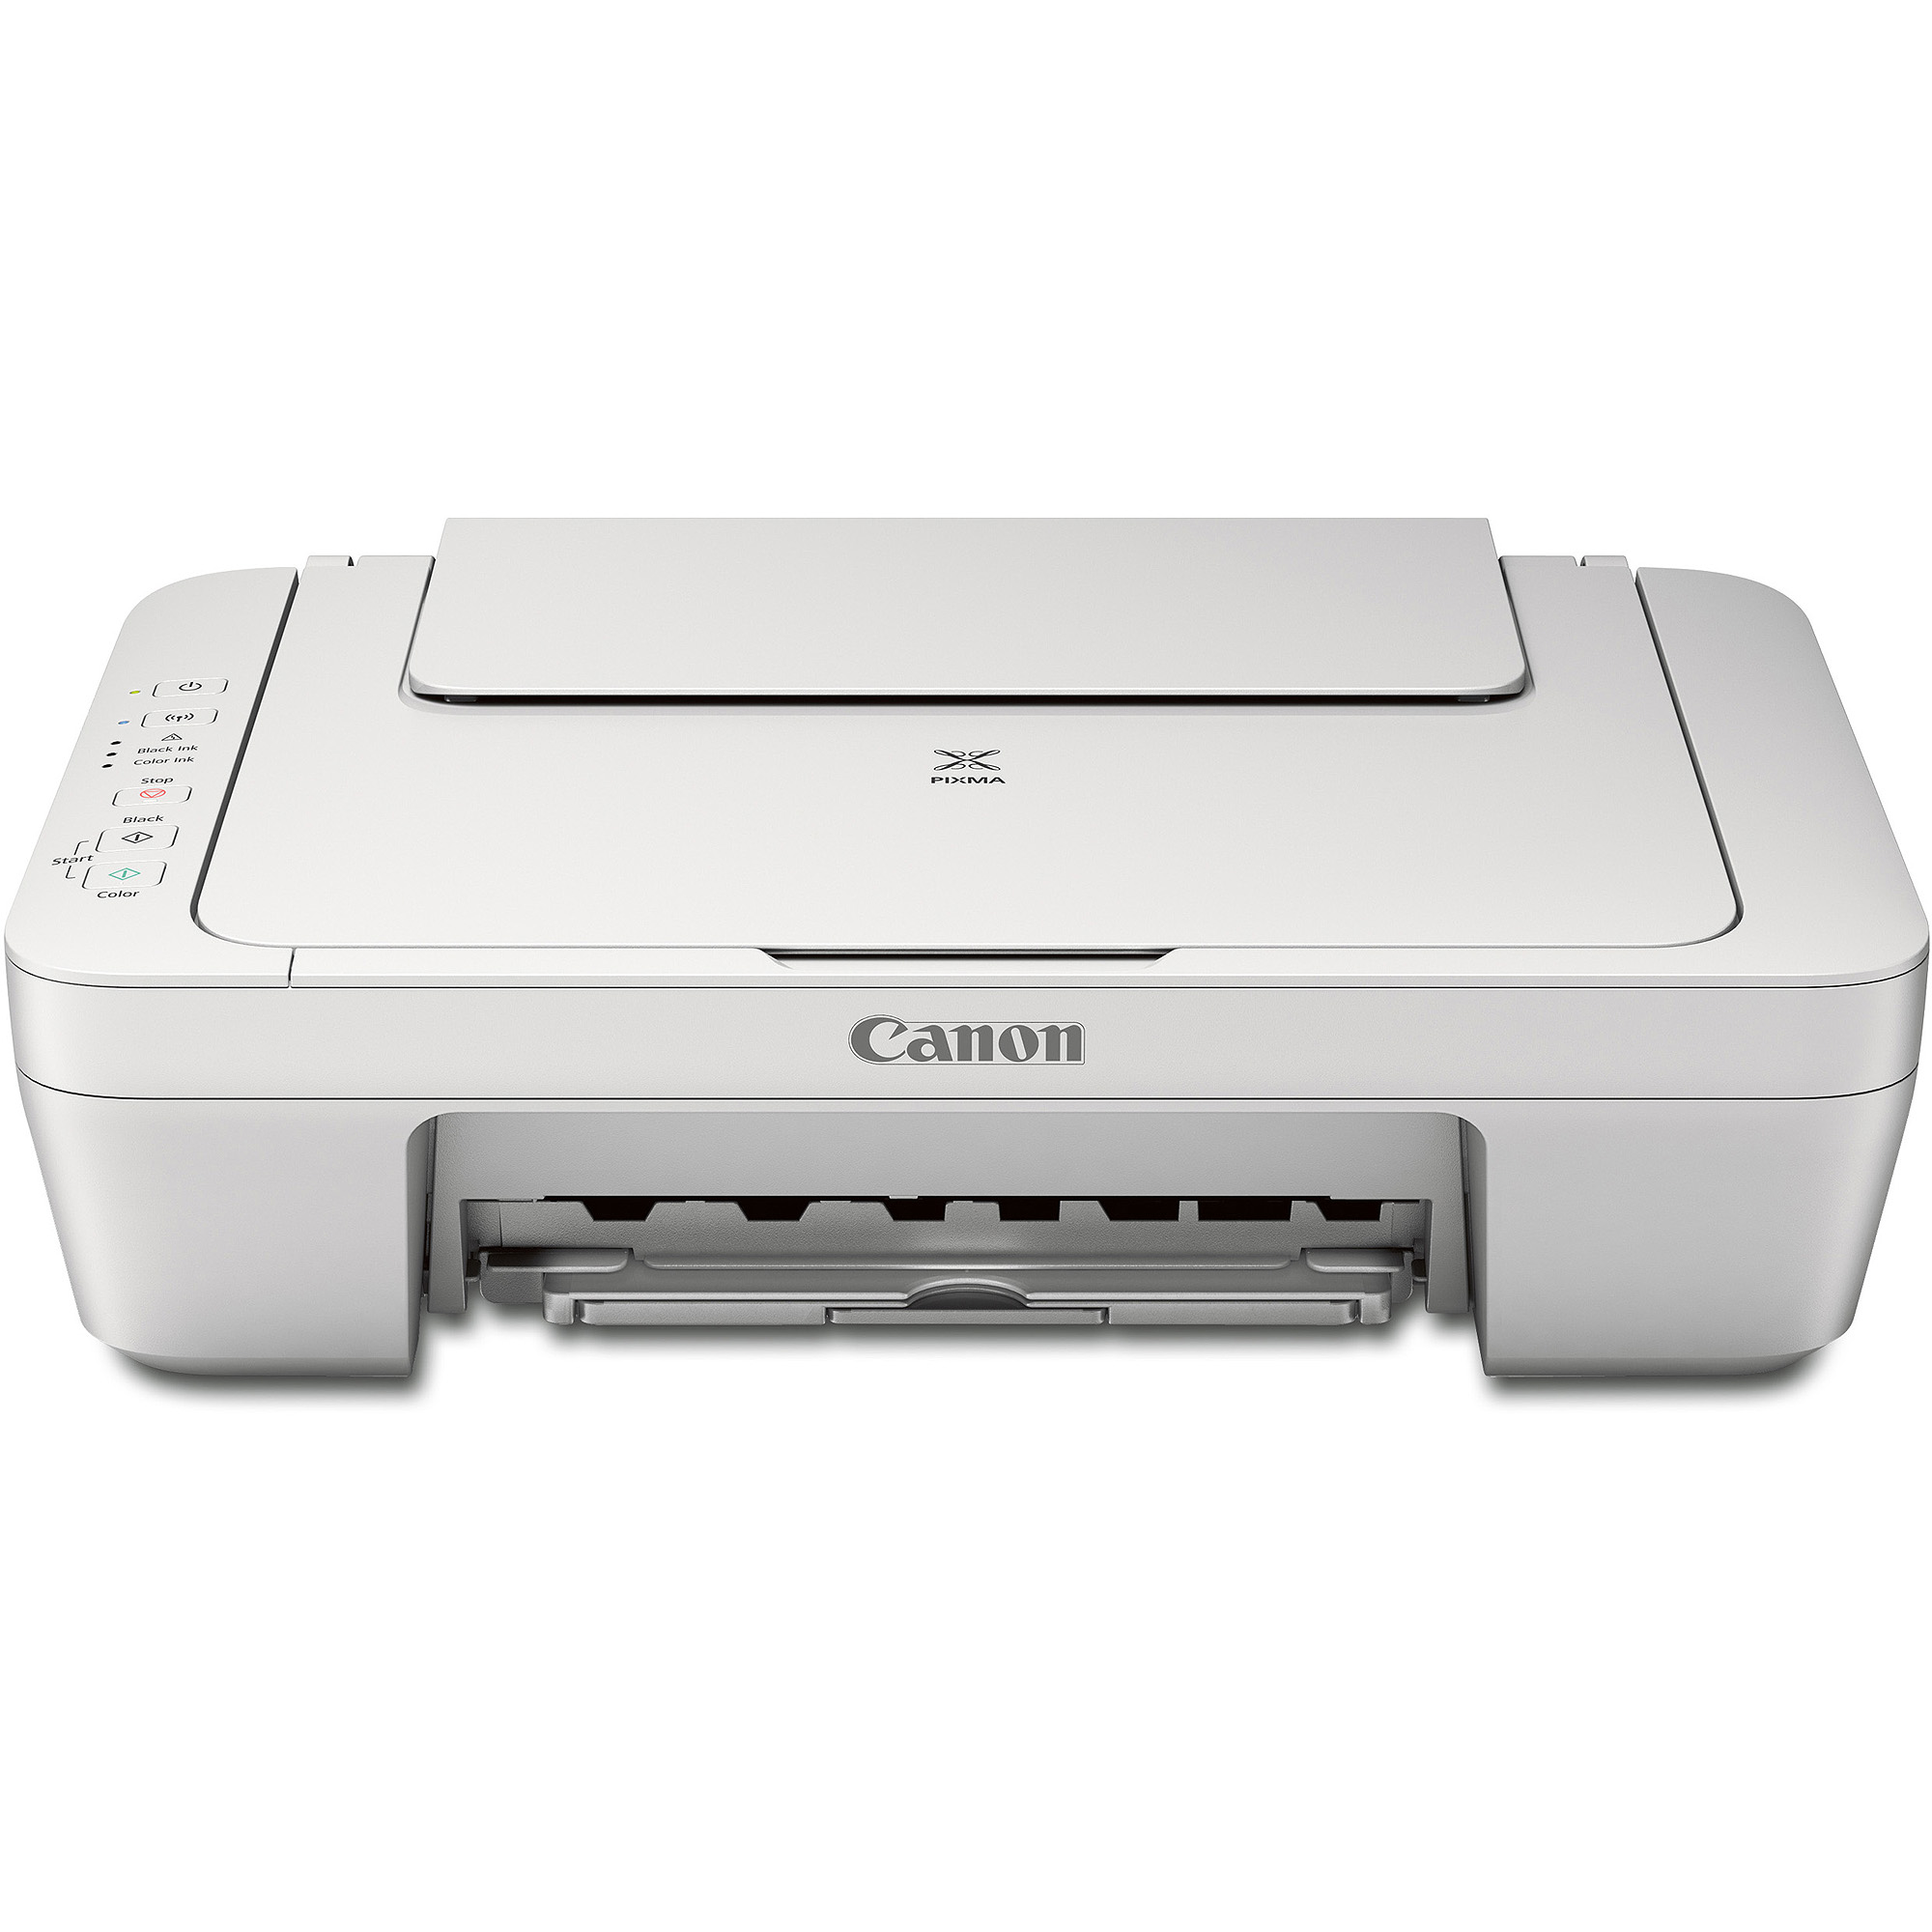 Canon PIXMA MG2920 Wireless Inkjet All In One Printer Copier Scanner White